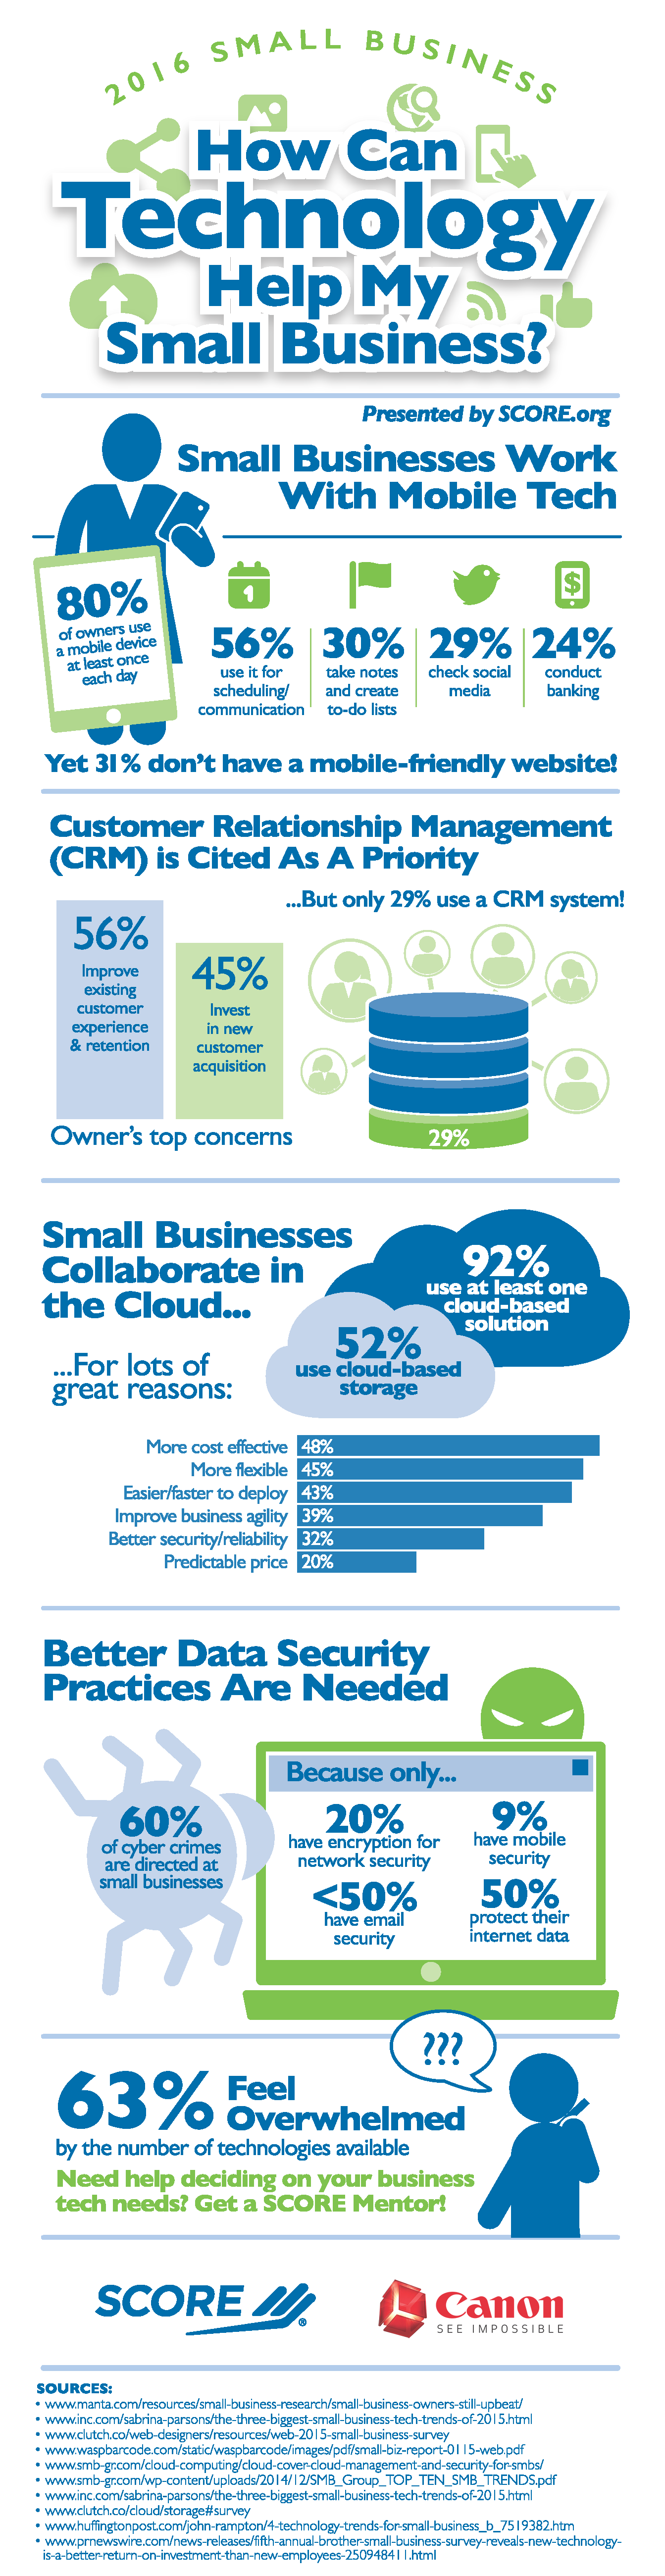 Infographic: How Can Technology Help My Small Business?